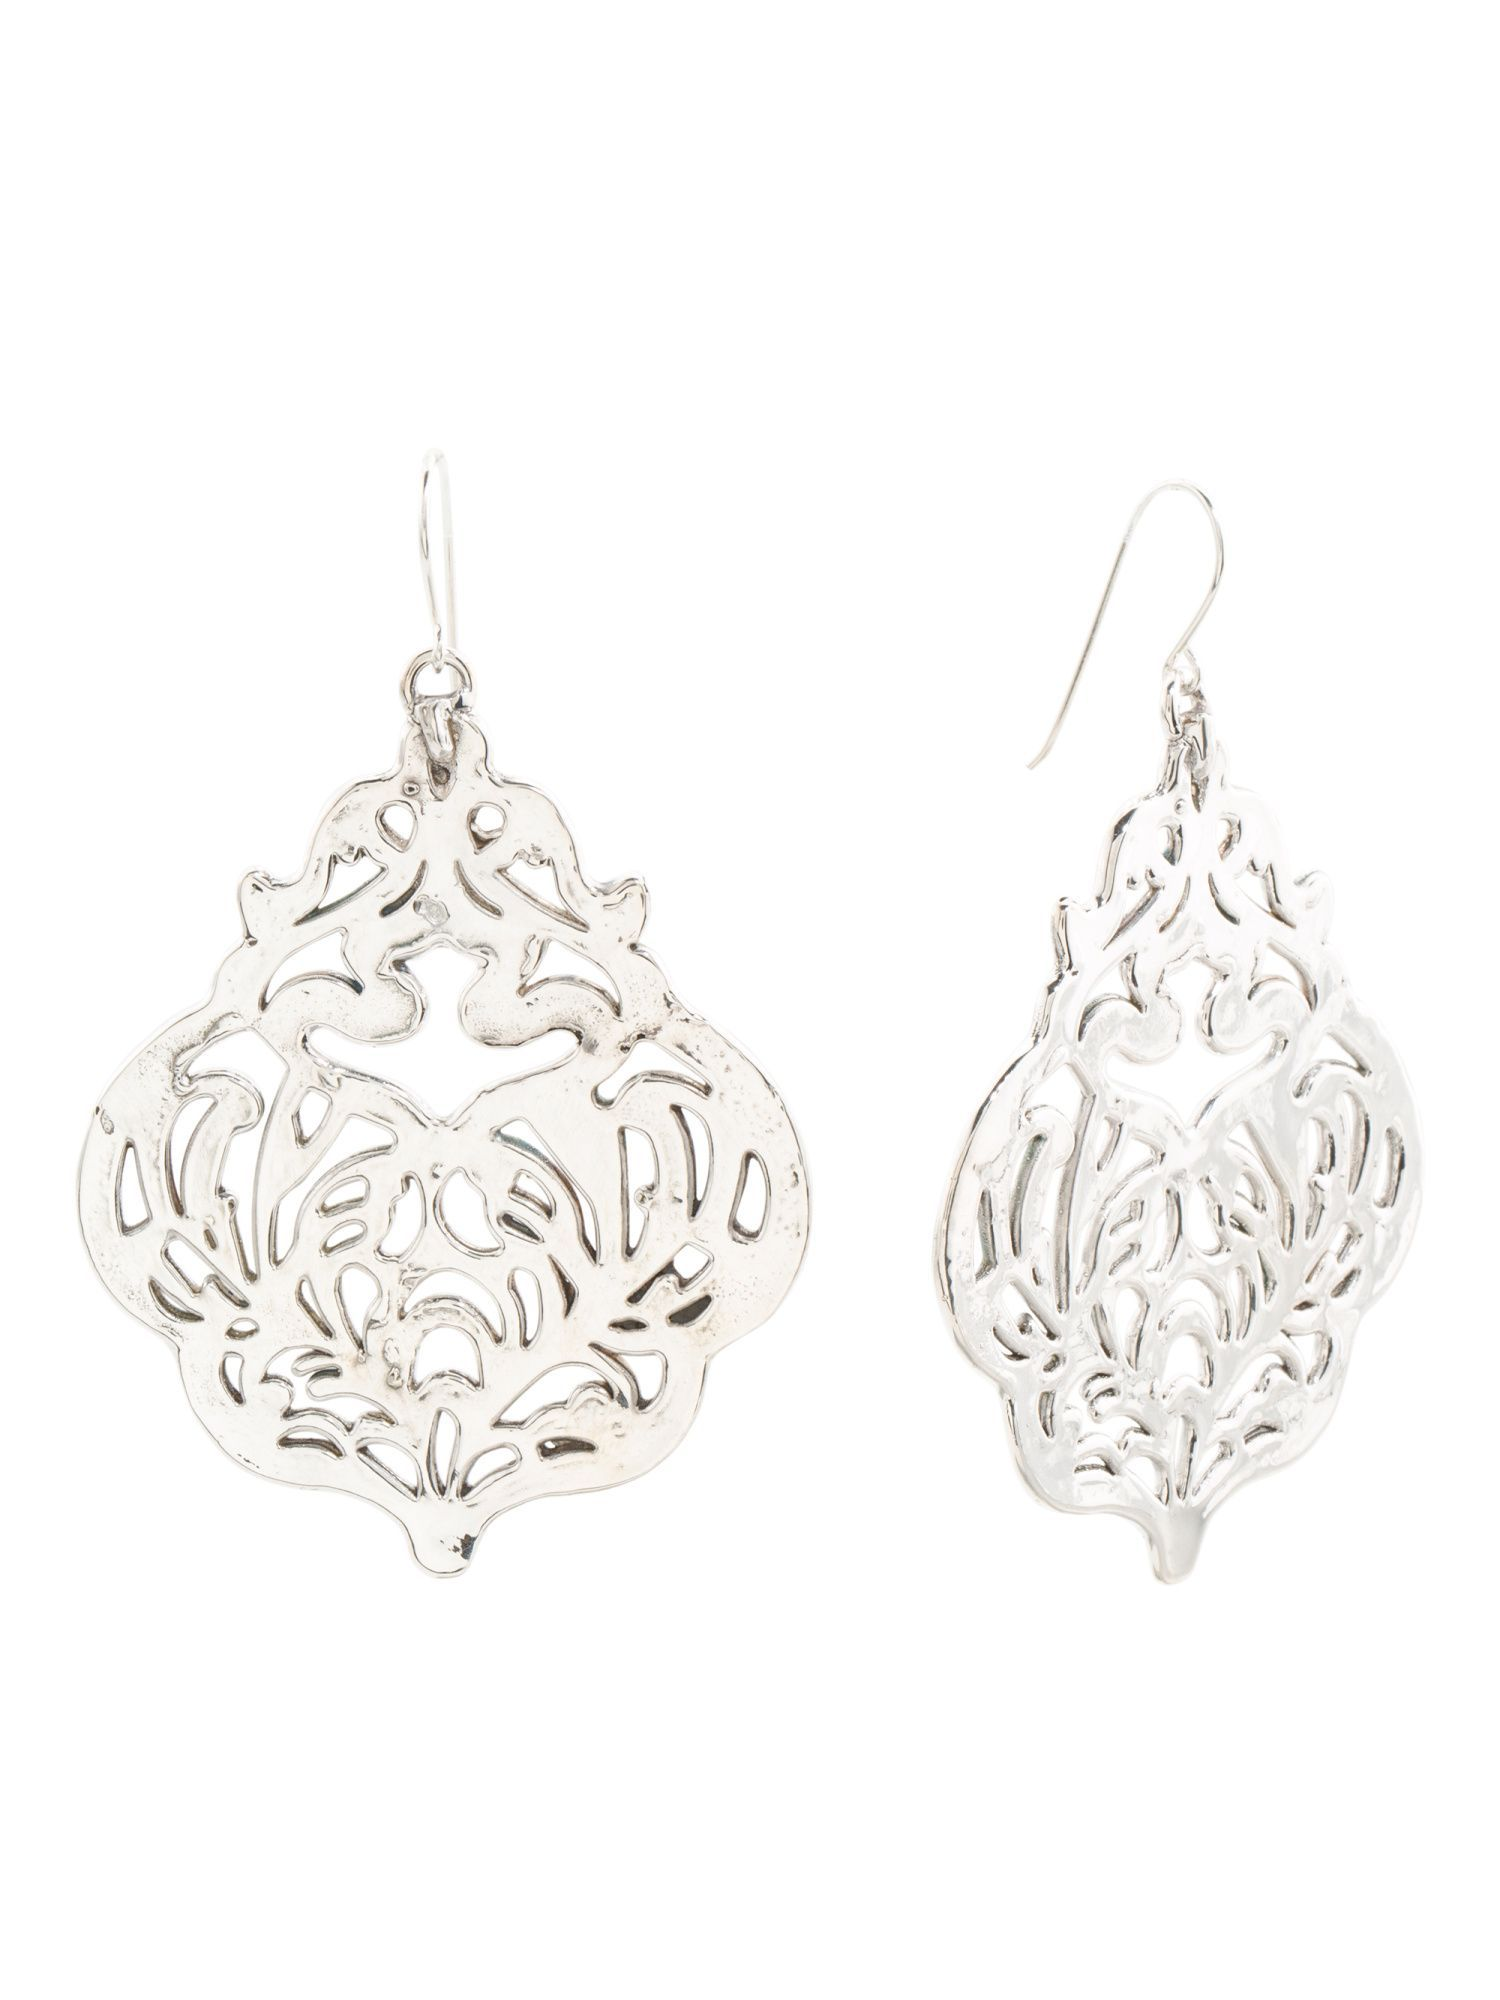 filigree usjewelryhouse products earrings rectangle geometric two tone